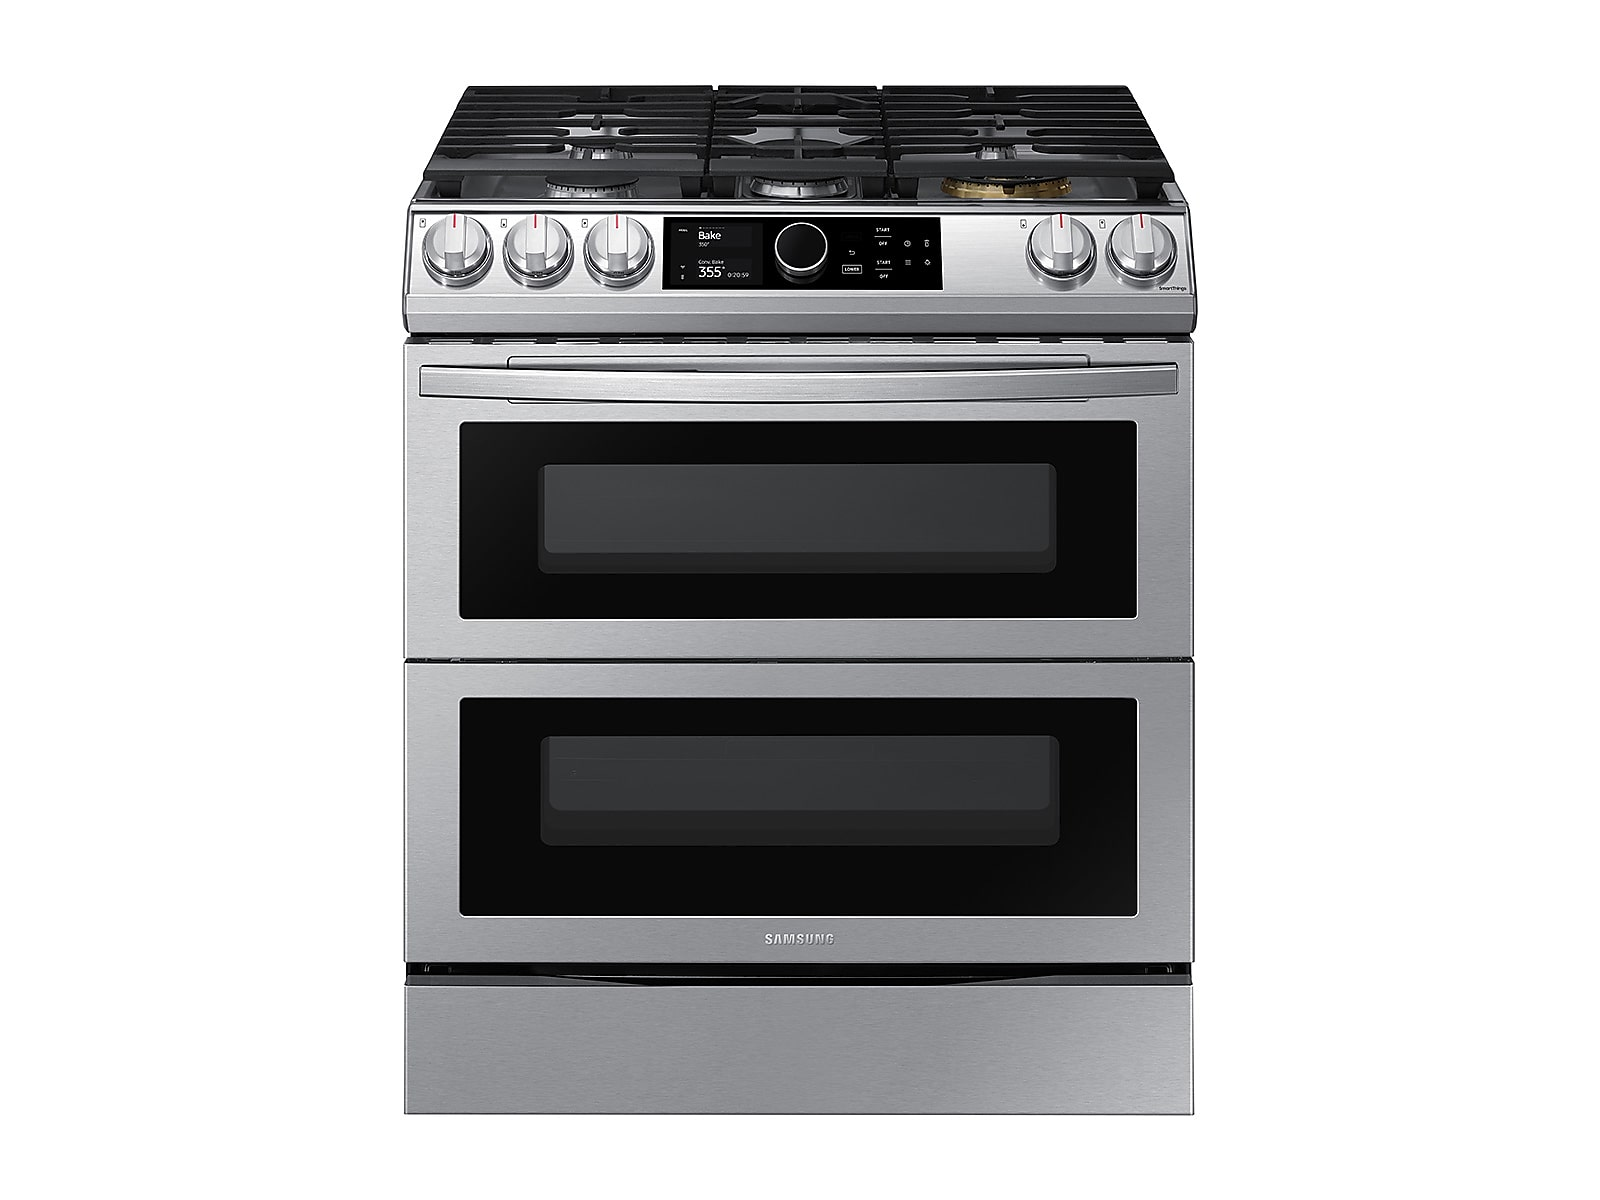 Samsung 6.0 cu ft. Smart Slide-in Gas Range with Flex Duo™, Smart Dial & Air Fry in Silver(NX60T8751SS/AA)